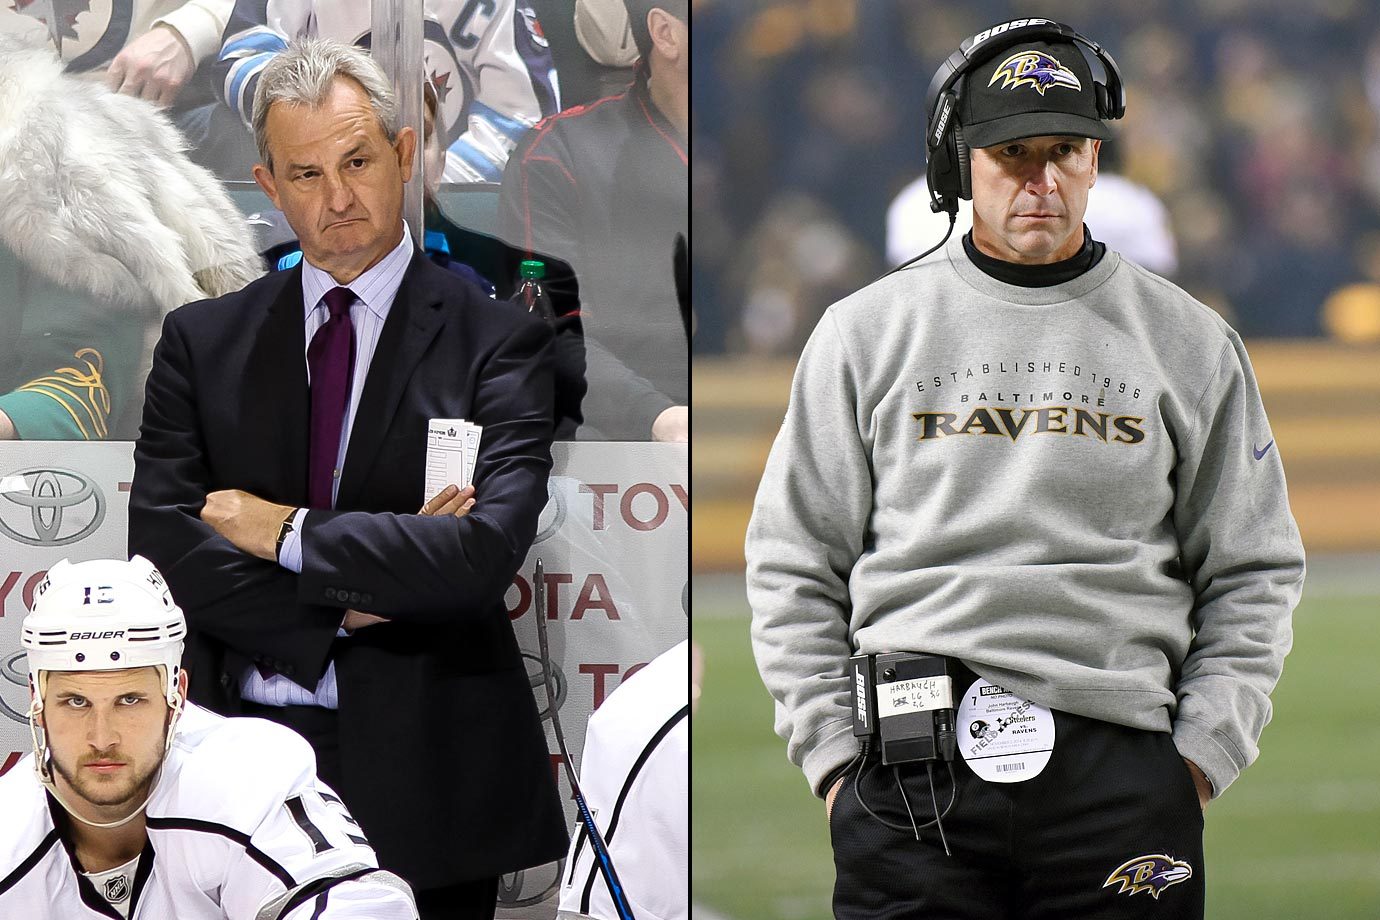 "Sutter was given a new ""multi-year"" deal by the Kings according to a team media release in January 2013 and recent reports have put his annual paycheck at $2.25 million. Harbaugh was signed to an extension by the Ravens in March 2014 that bumped his yearly pay from $4 million per to the $7 million neighborhood."